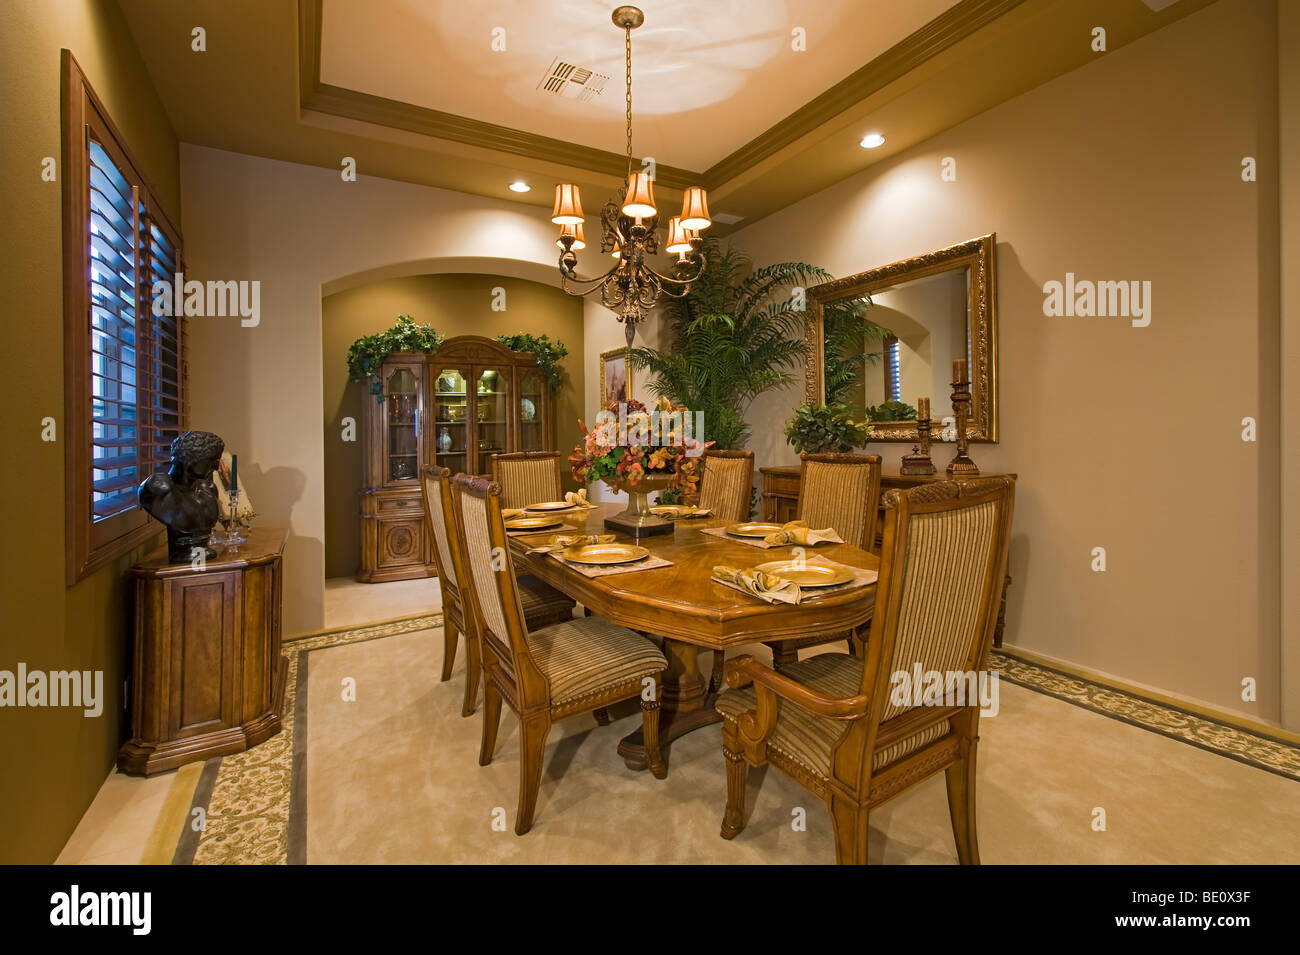 Elegant traditional furnished dining room in warm tones with shuttered windows - Stock Image